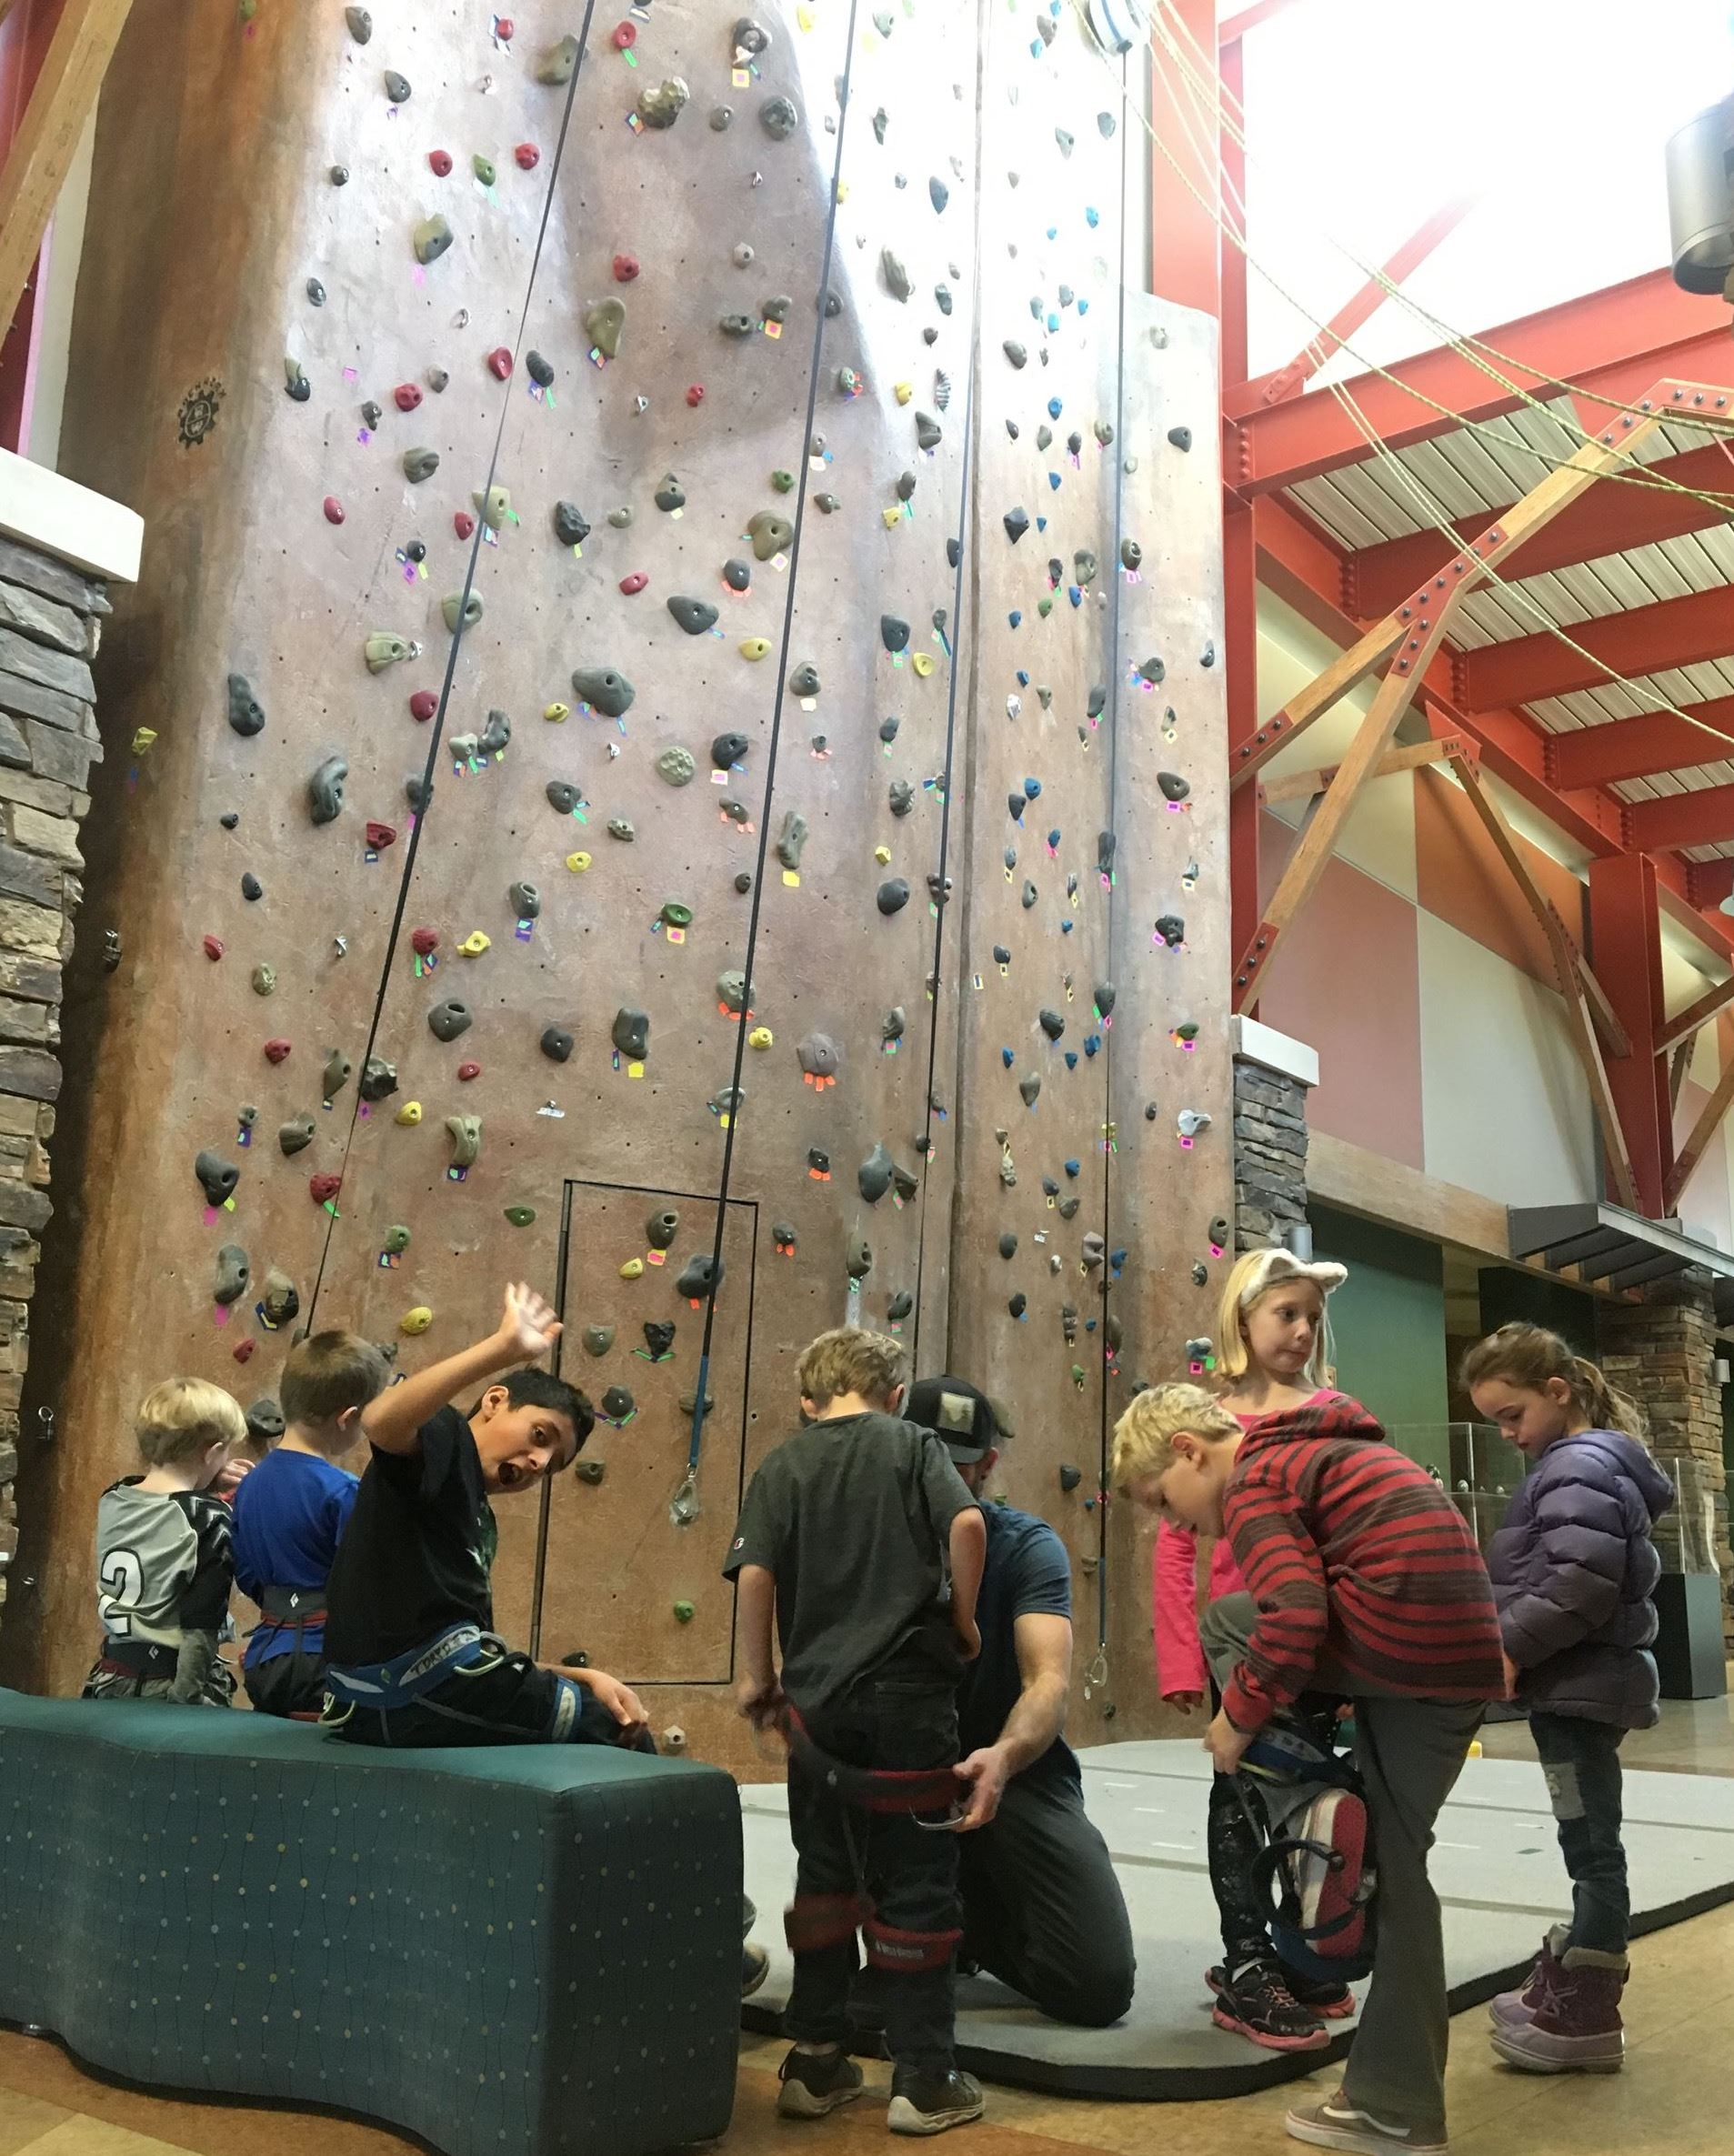 Kids Kamp Climbing Wall Opens in new window